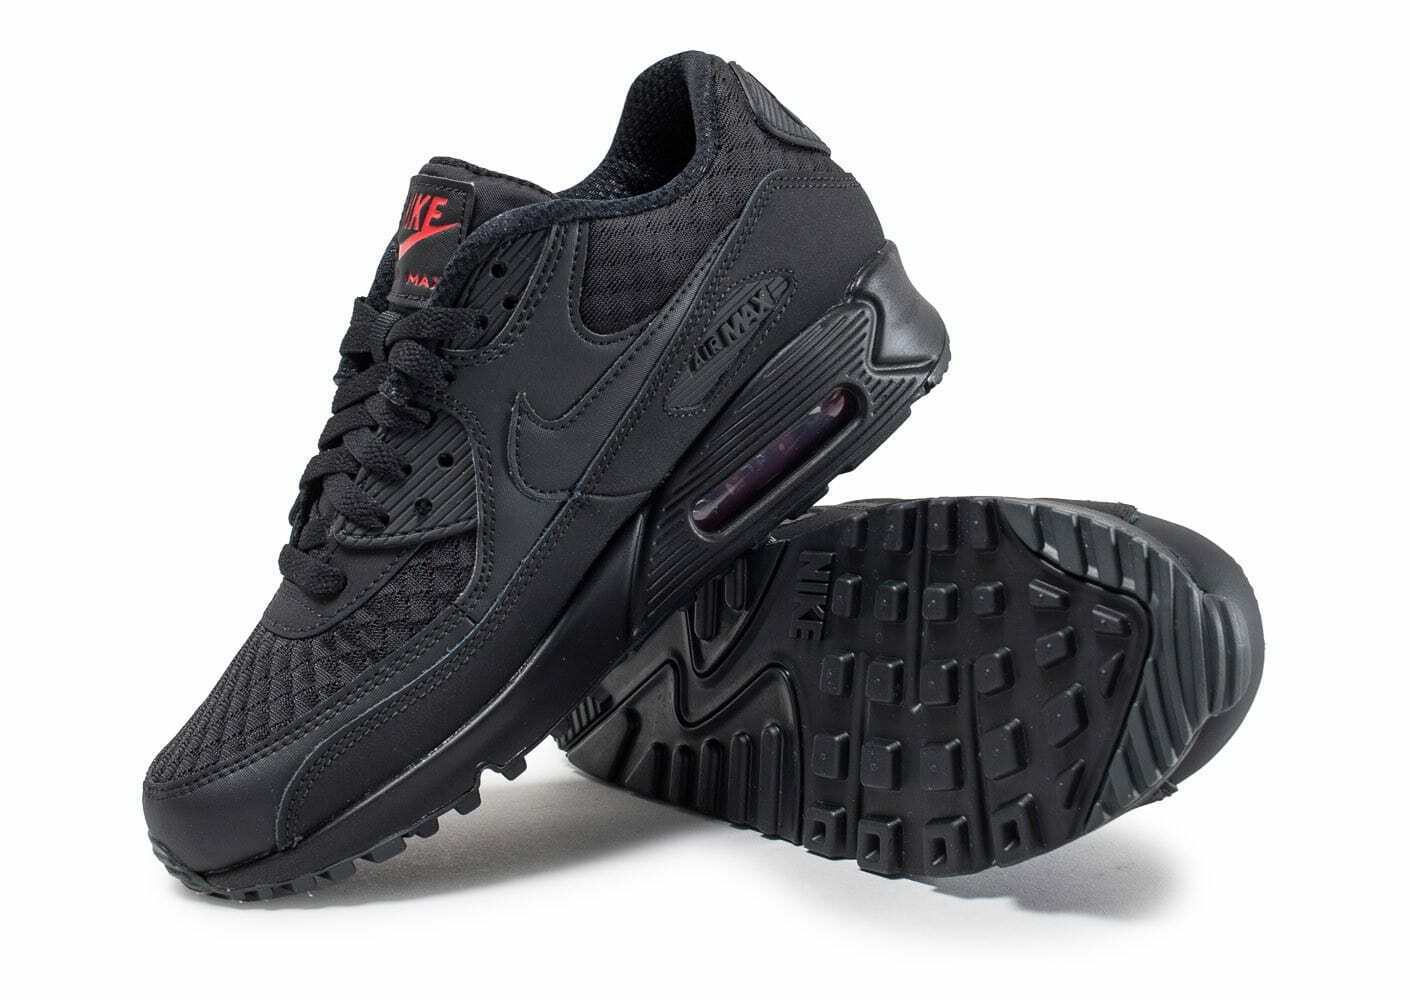 Nike AIR MAX 90 ESSENTIAL NINJA PACK BLACK METALLIC RED  SZ 11.5 SUPER RARE